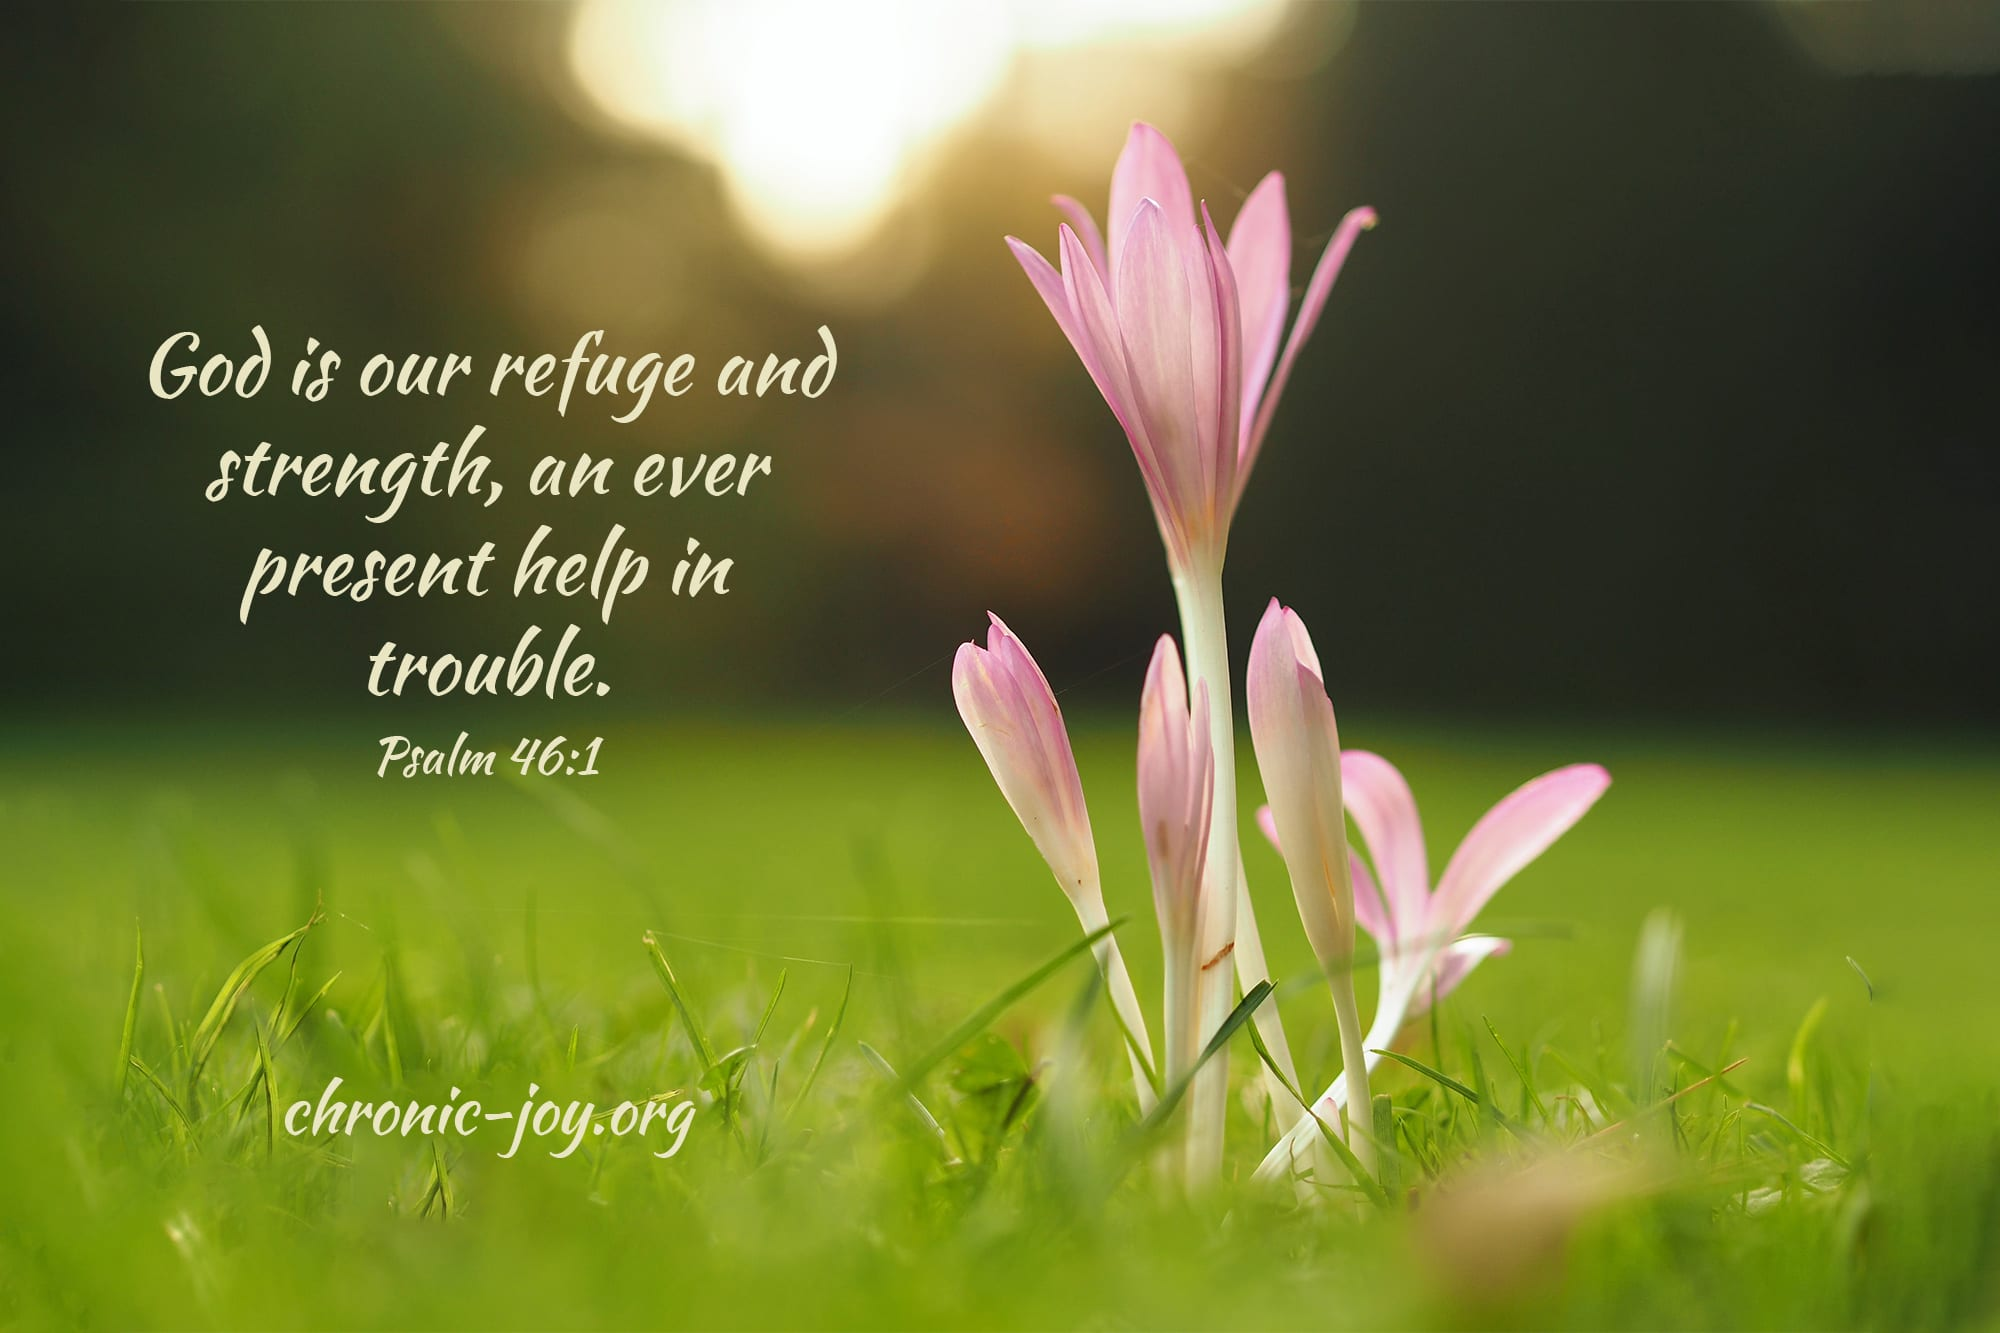 God is our refuge and strength, an ever present help in trouble.  Psalm 46:1